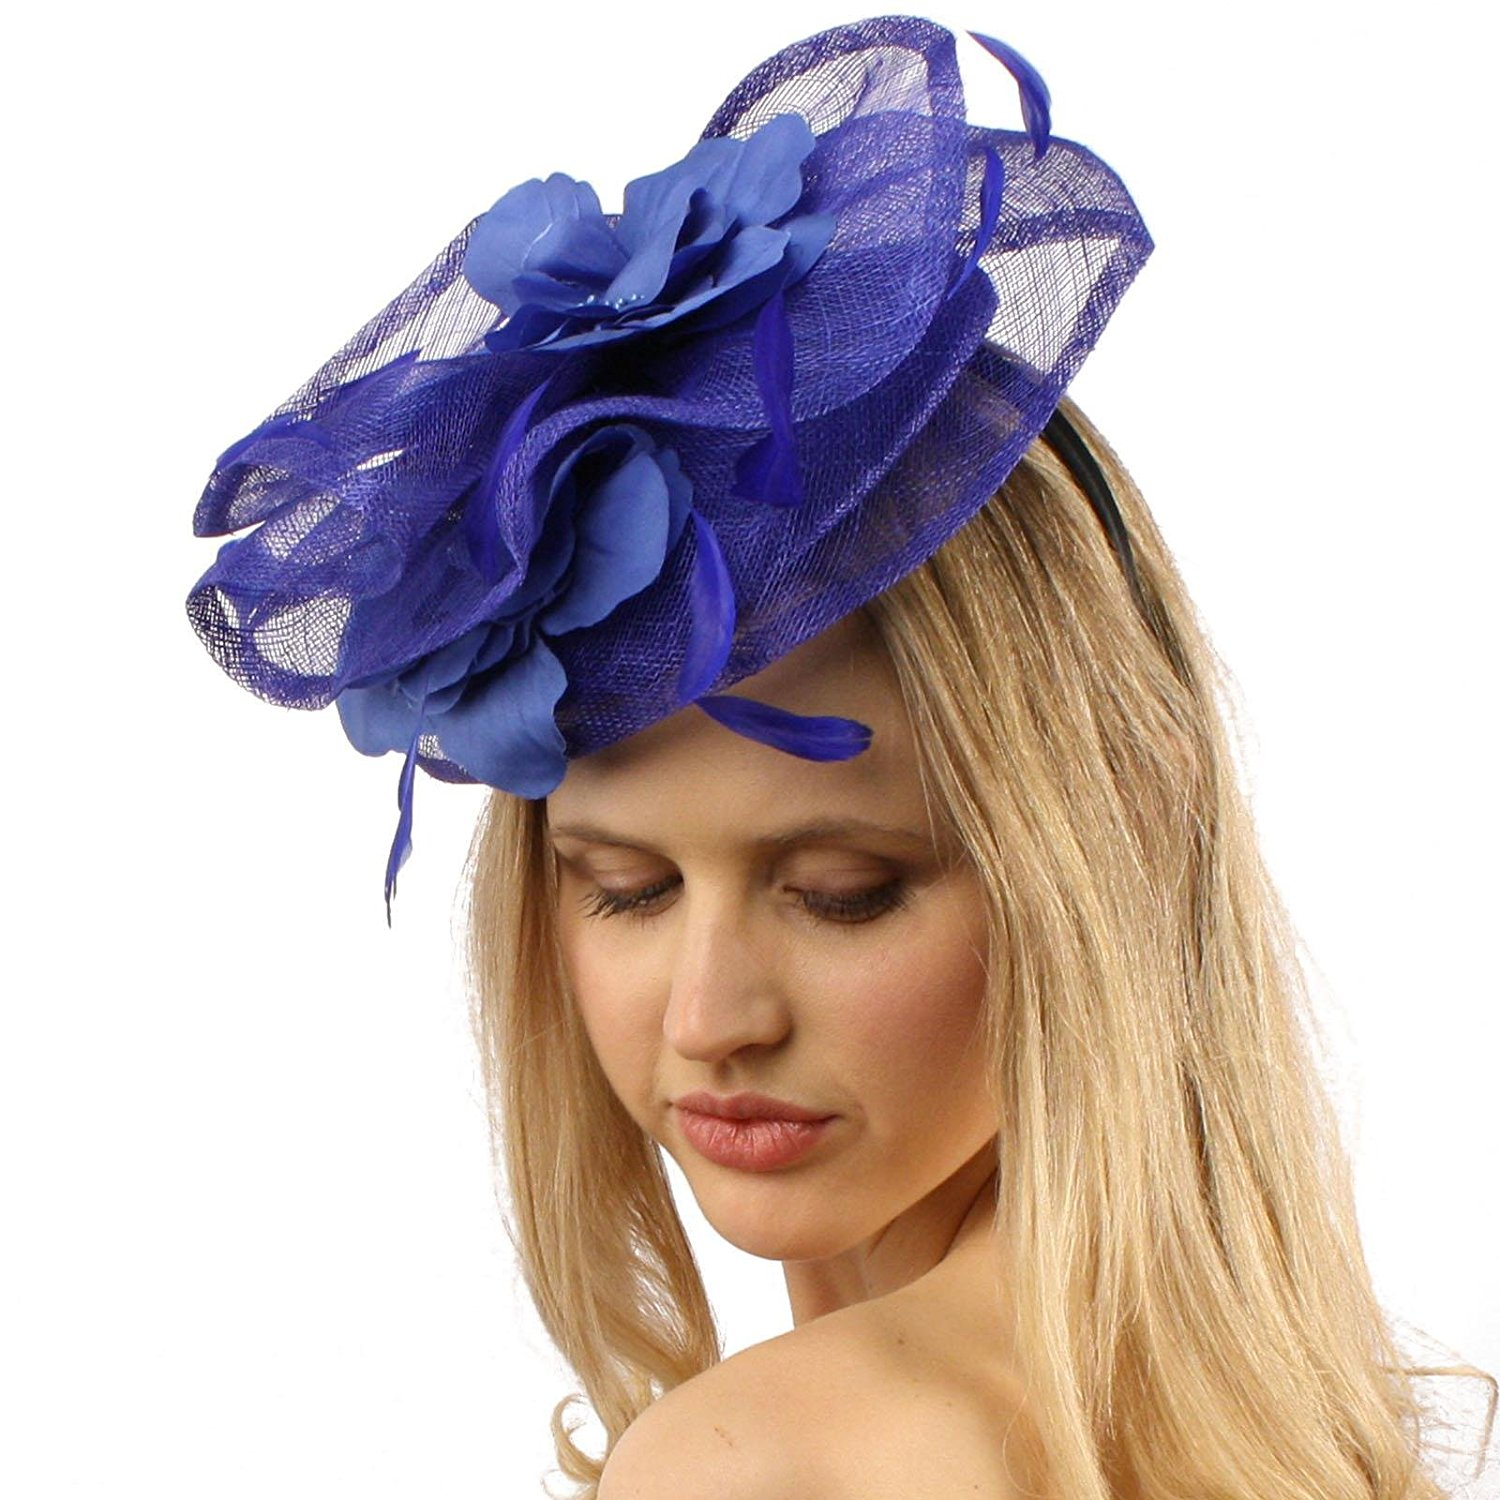 Get Quotations · Sinamay Disc Feathers Floral Fascinators Headband  Millinery Cocktail Hat f116c70446fa